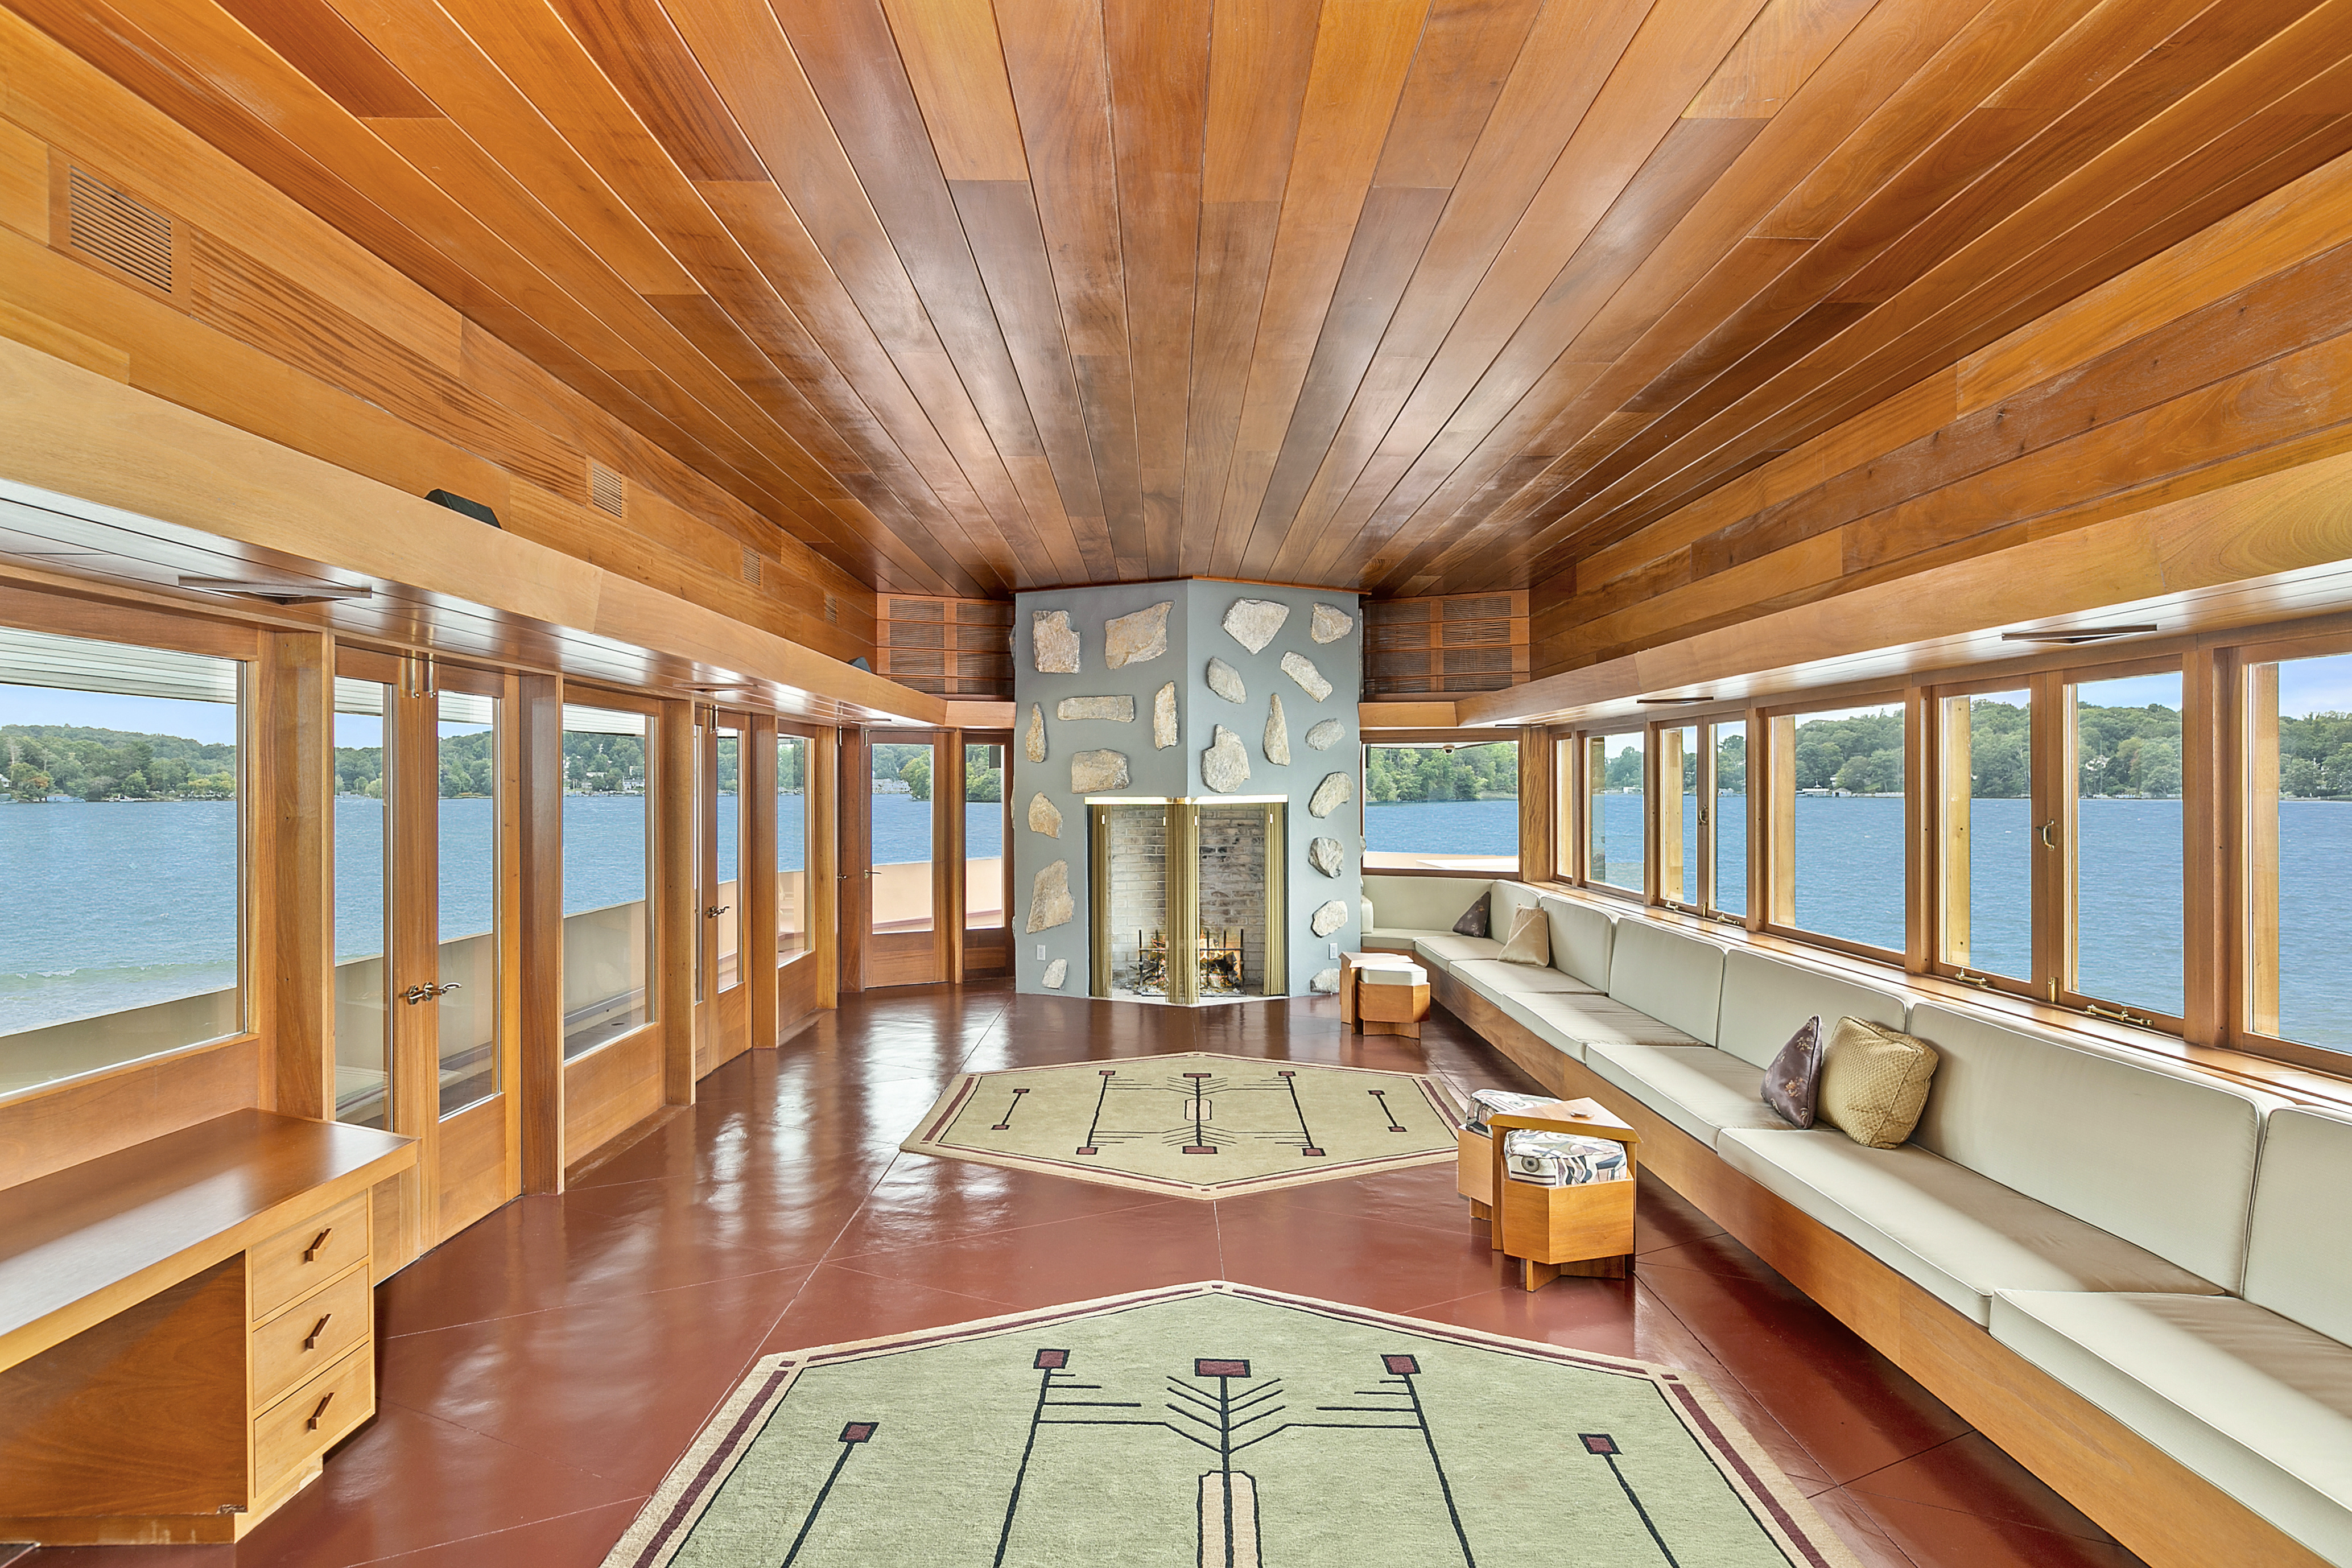 Frank lloyd wright designed homes on a heart shaped private island can be yours for 12 9m 6sqft - Frank lloyd wright designs ...